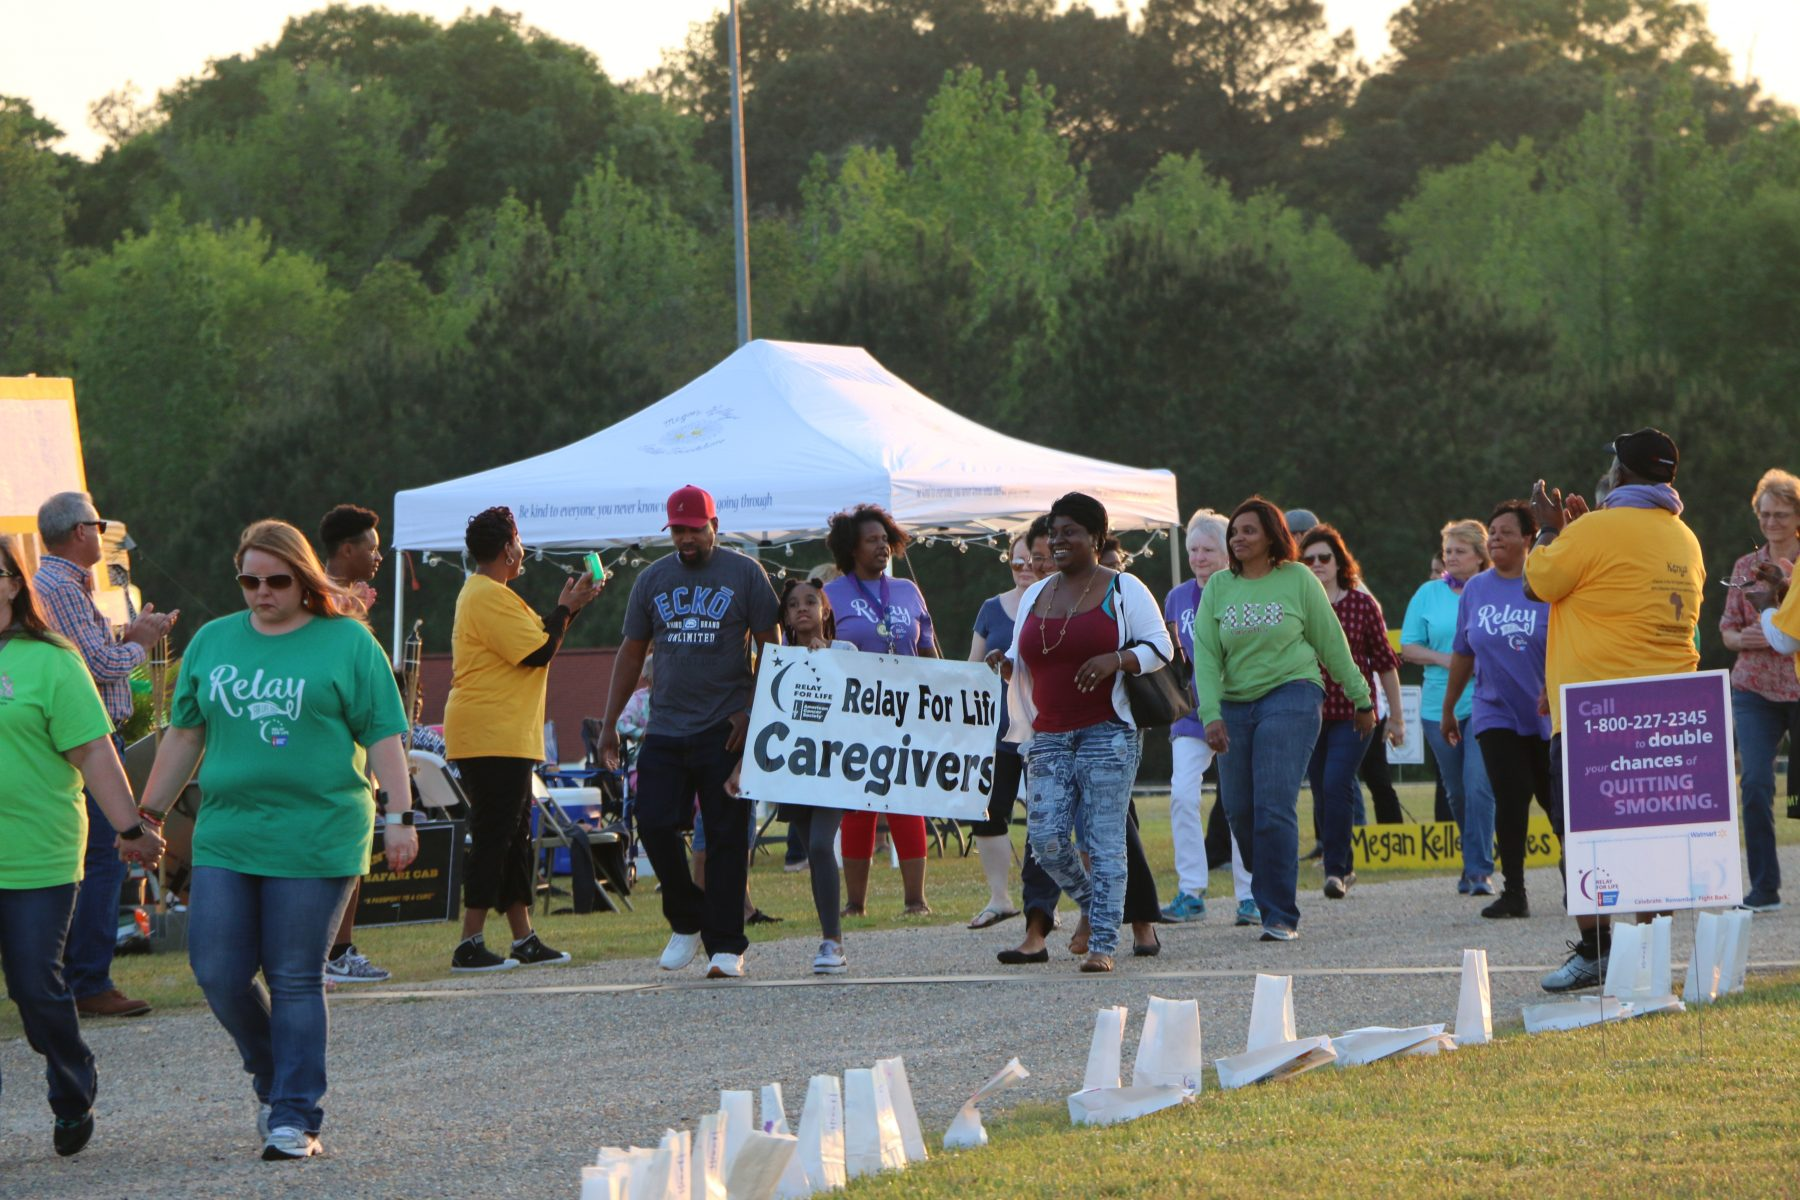 relay for life caregivers walking